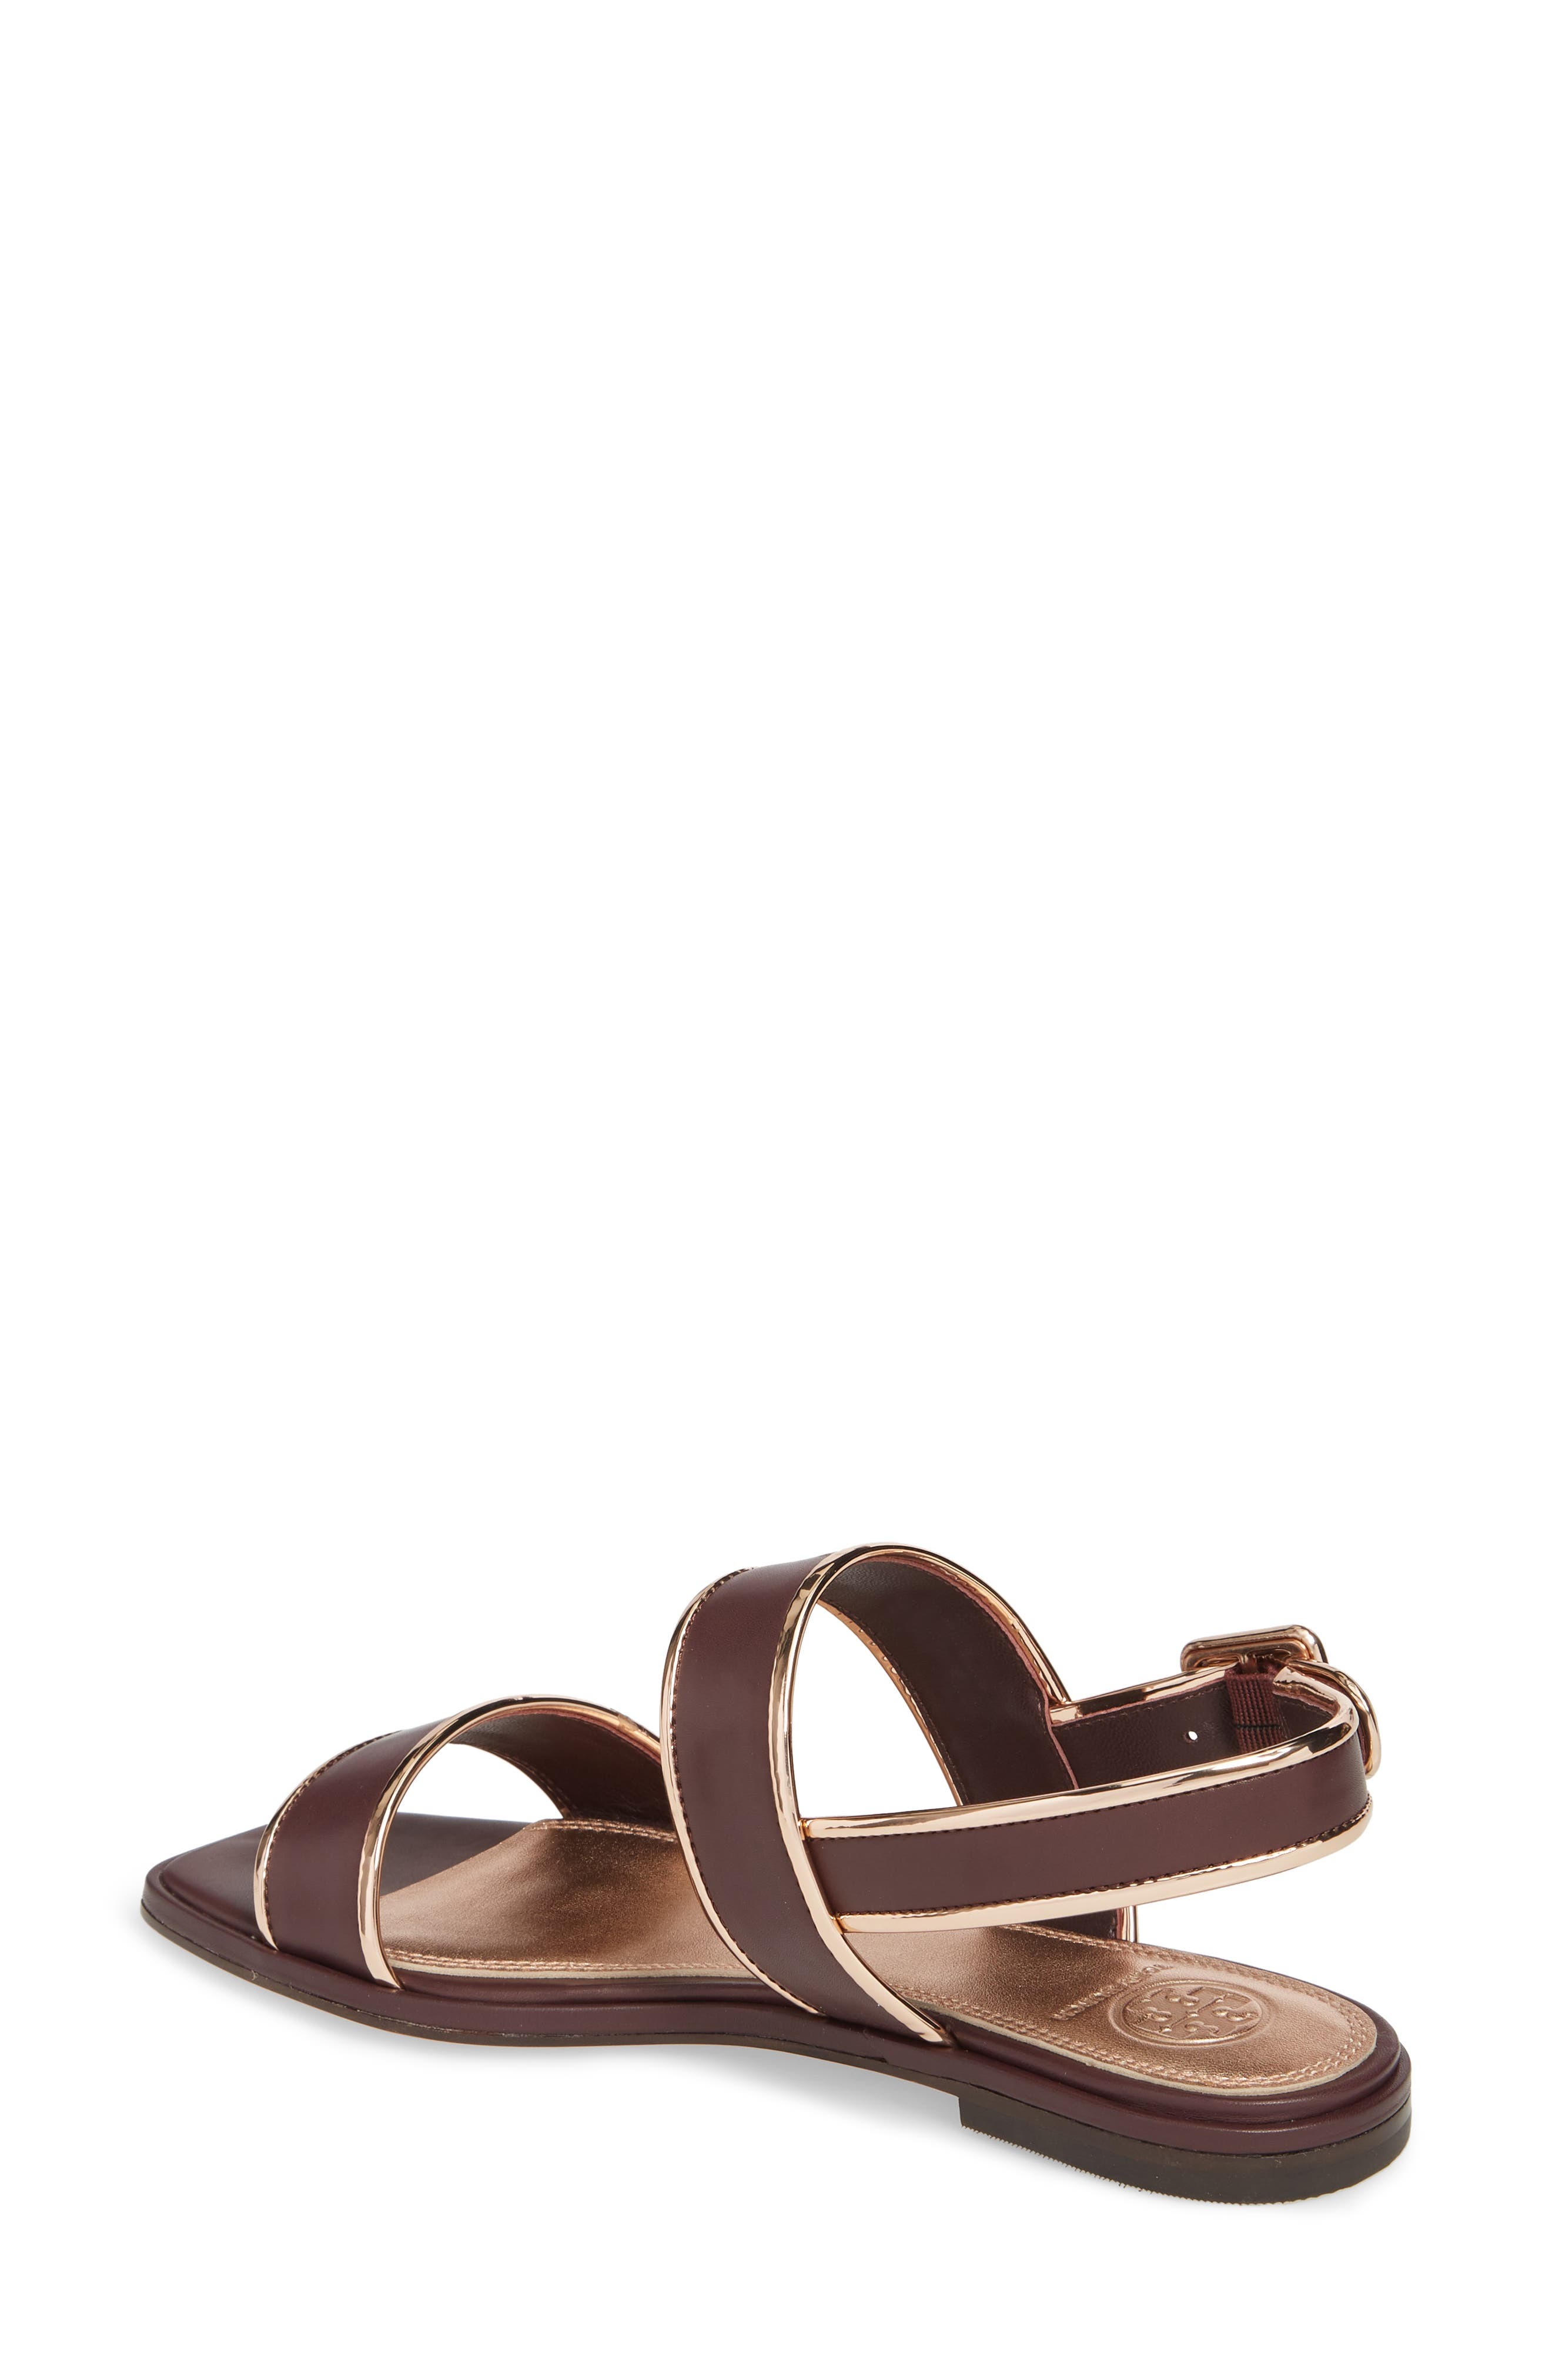 Delaney Double Strap Sandal,                             Alternate thumbnail 10, color,